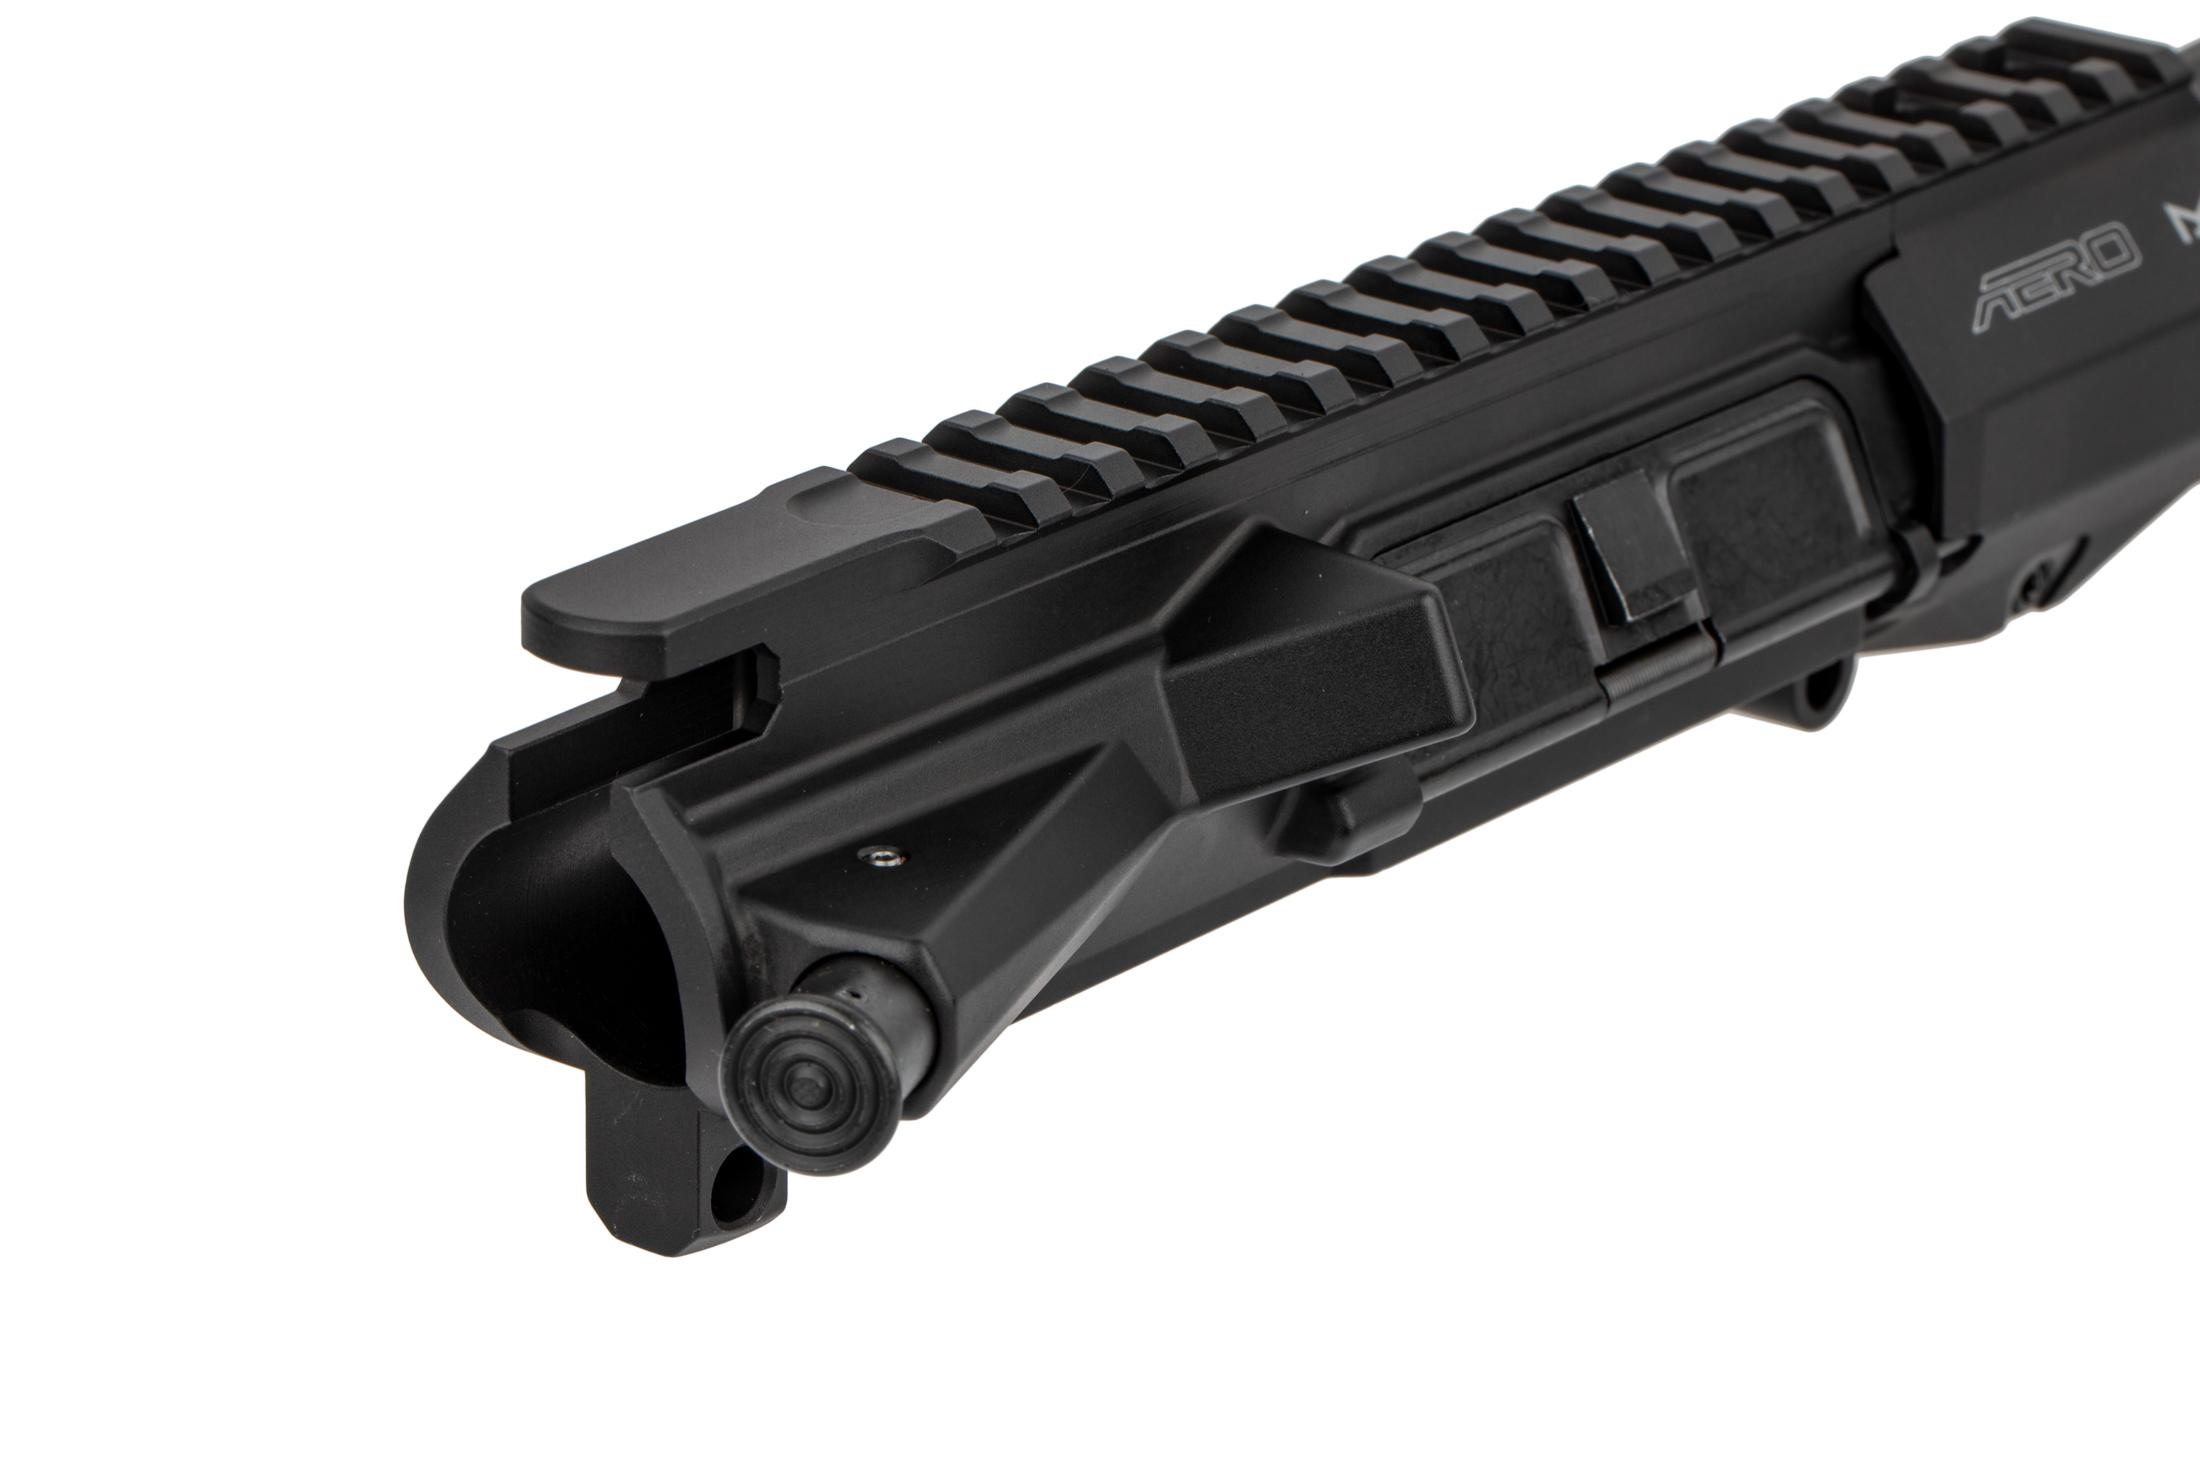 The Aero Precision AR15 barreled upper receiver is forged from 7075-T6 aluminum